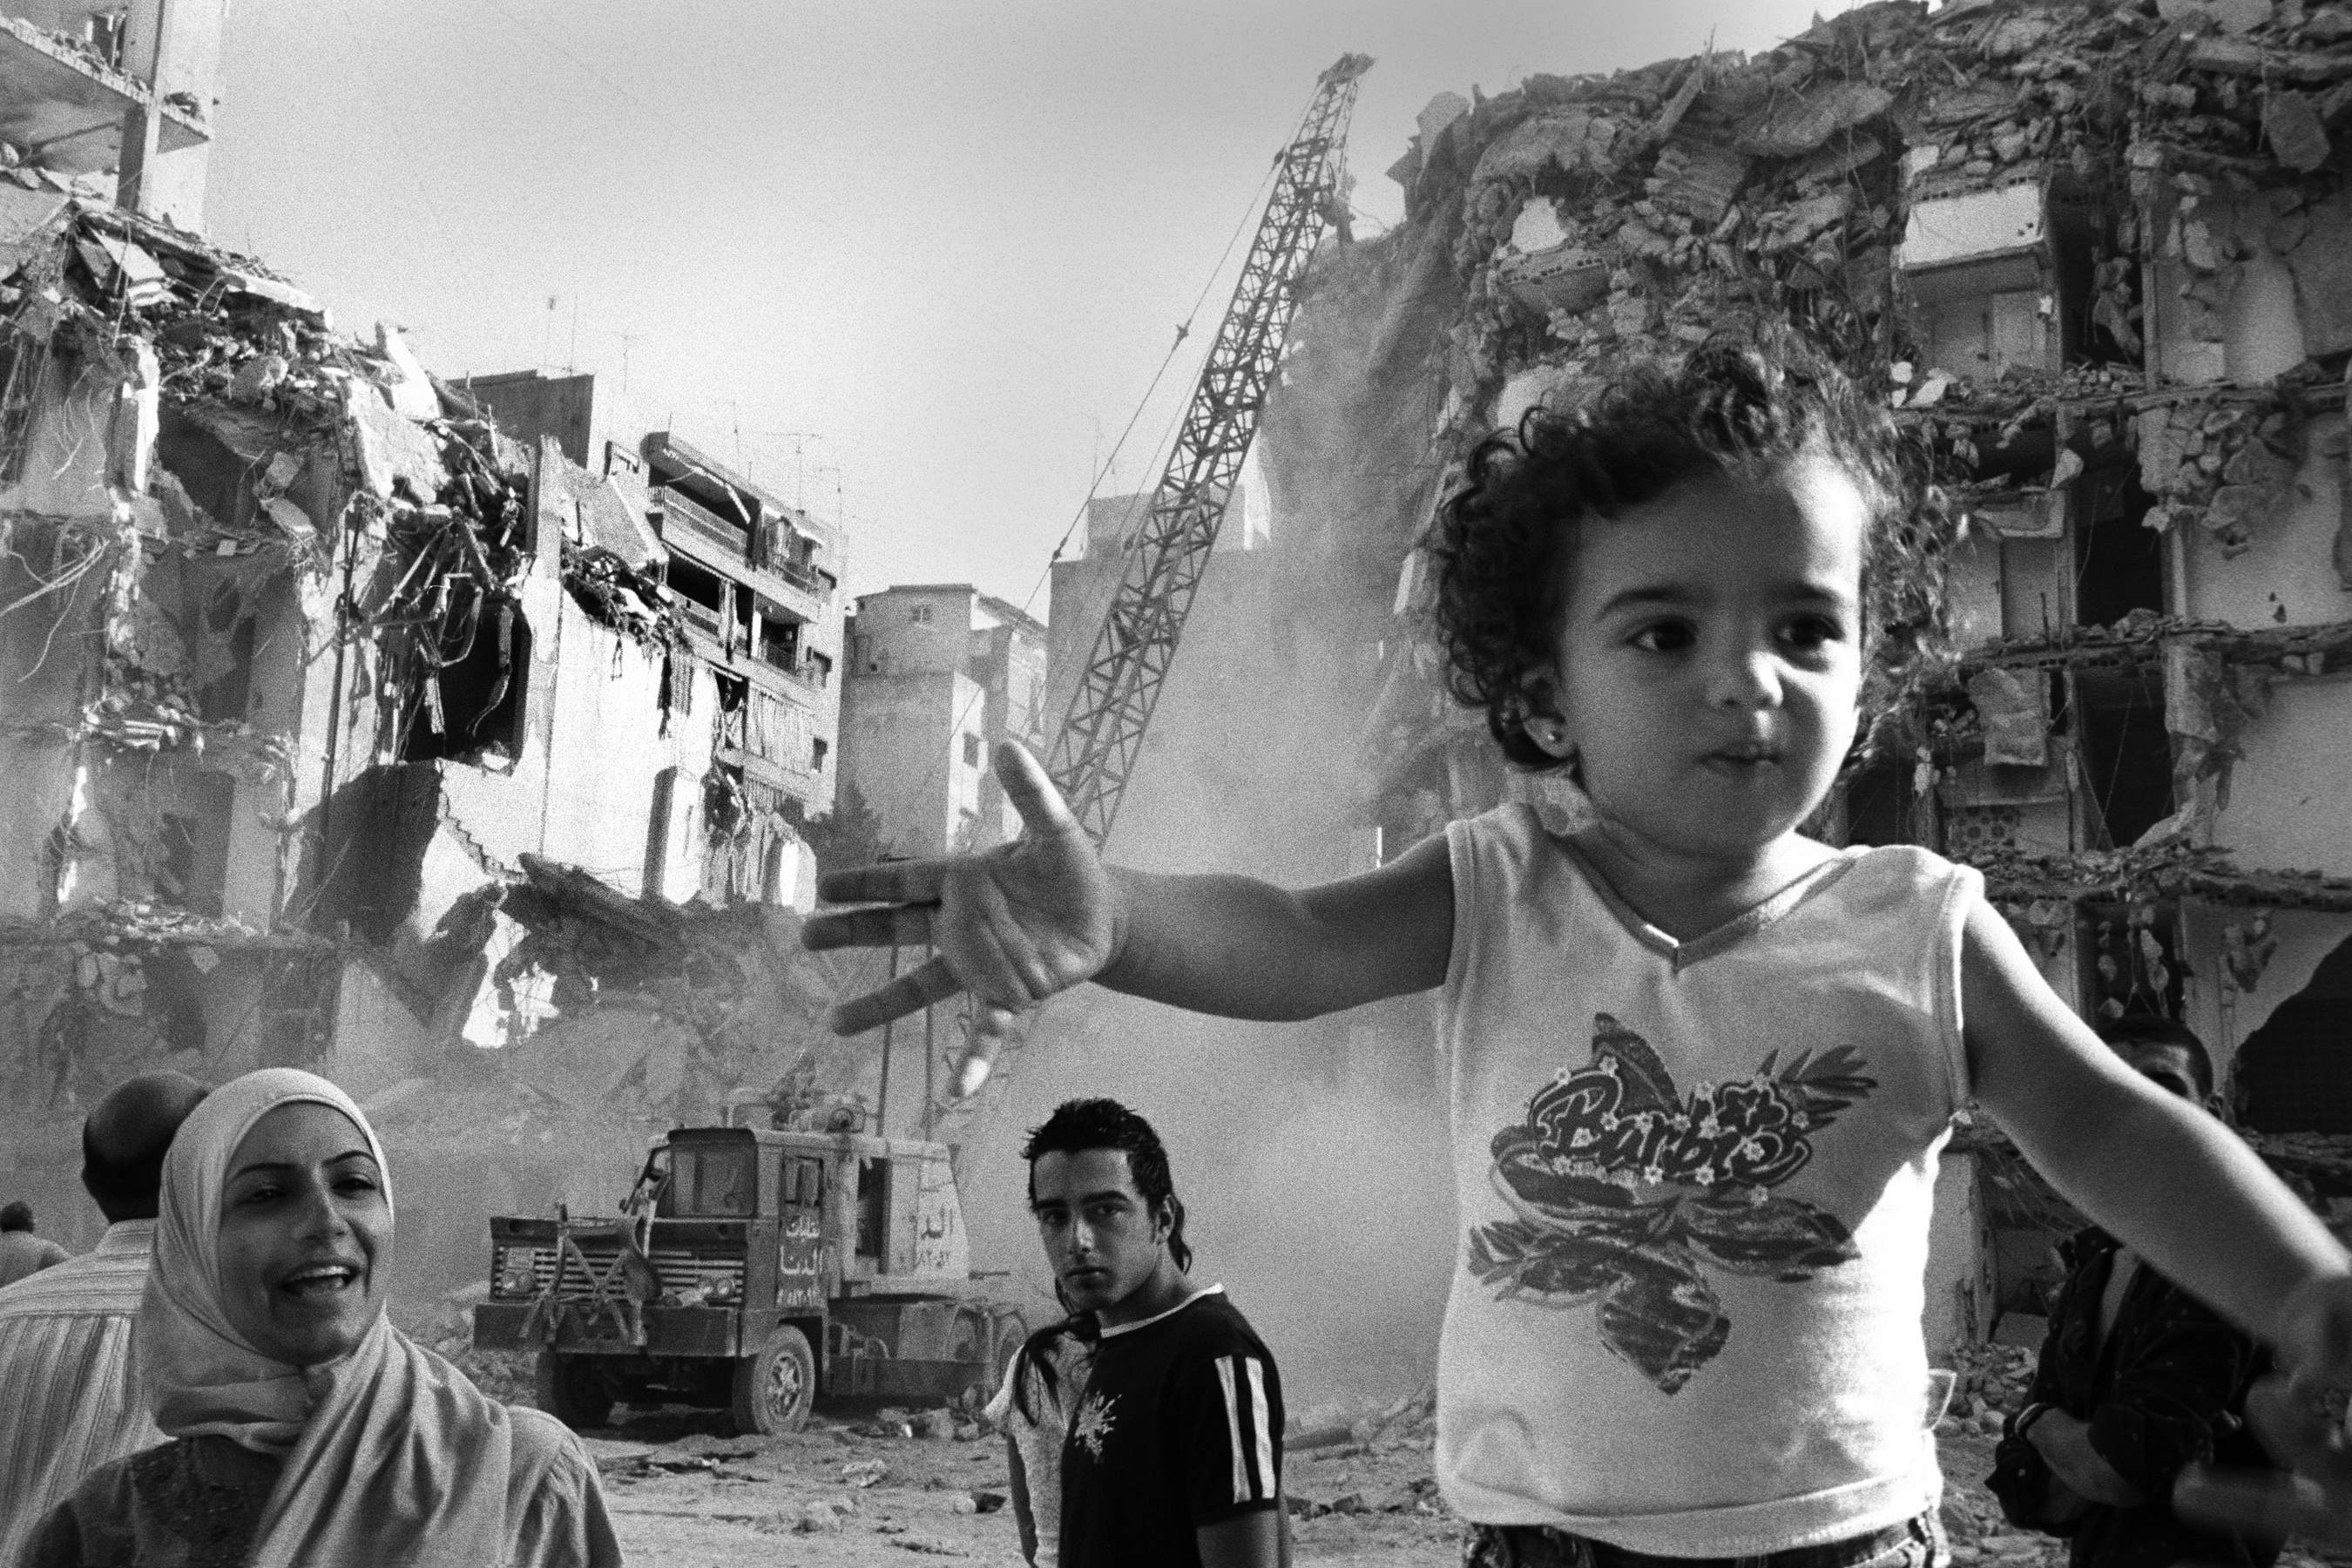 Rania Matar  Barbie Girl, Beirut 2006. Haret Hreik Beirut. The photographer arrived in Beirut to visit family days before the bombing of Lebanon by Israel started in 2006. Courtesy Rania Matar